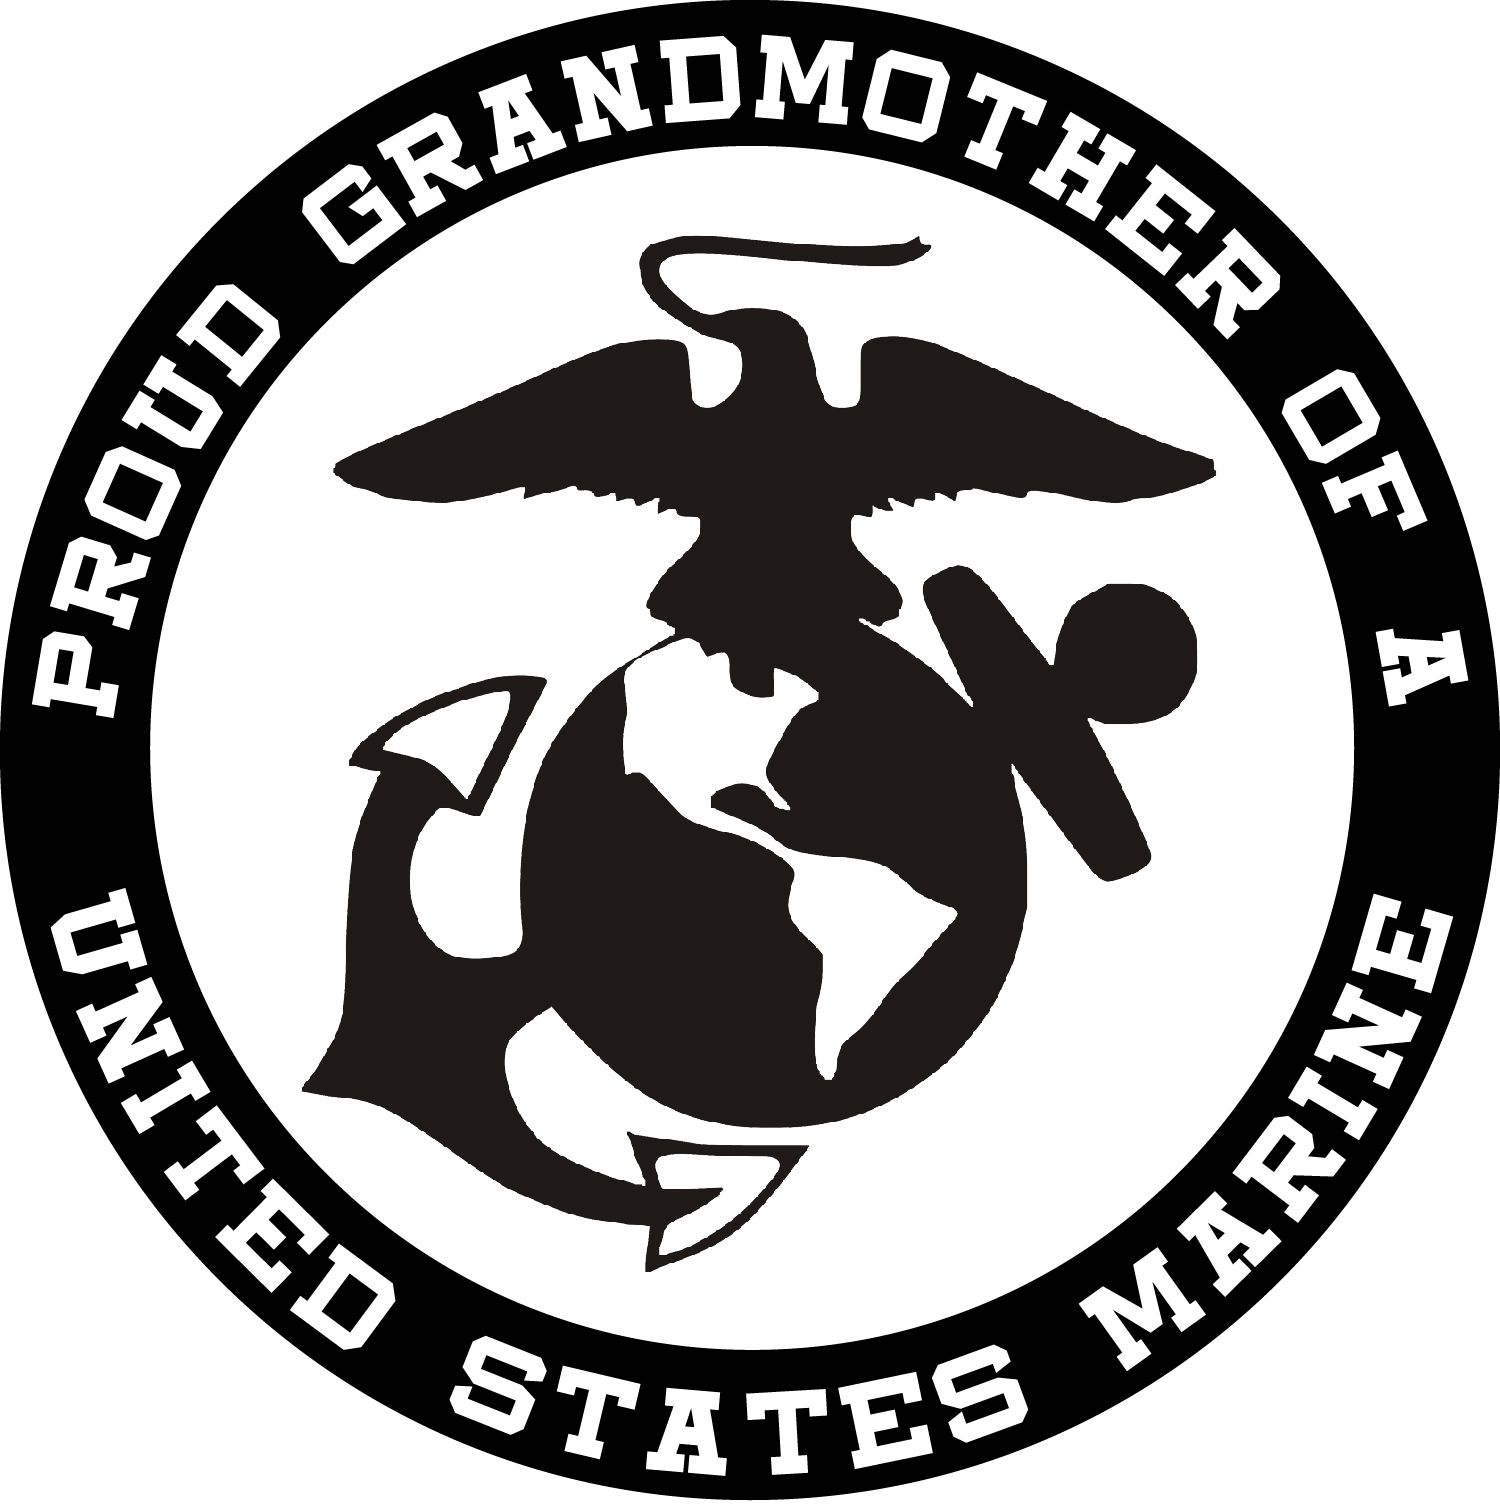 Pin By Franks Custom Creations On Military Related